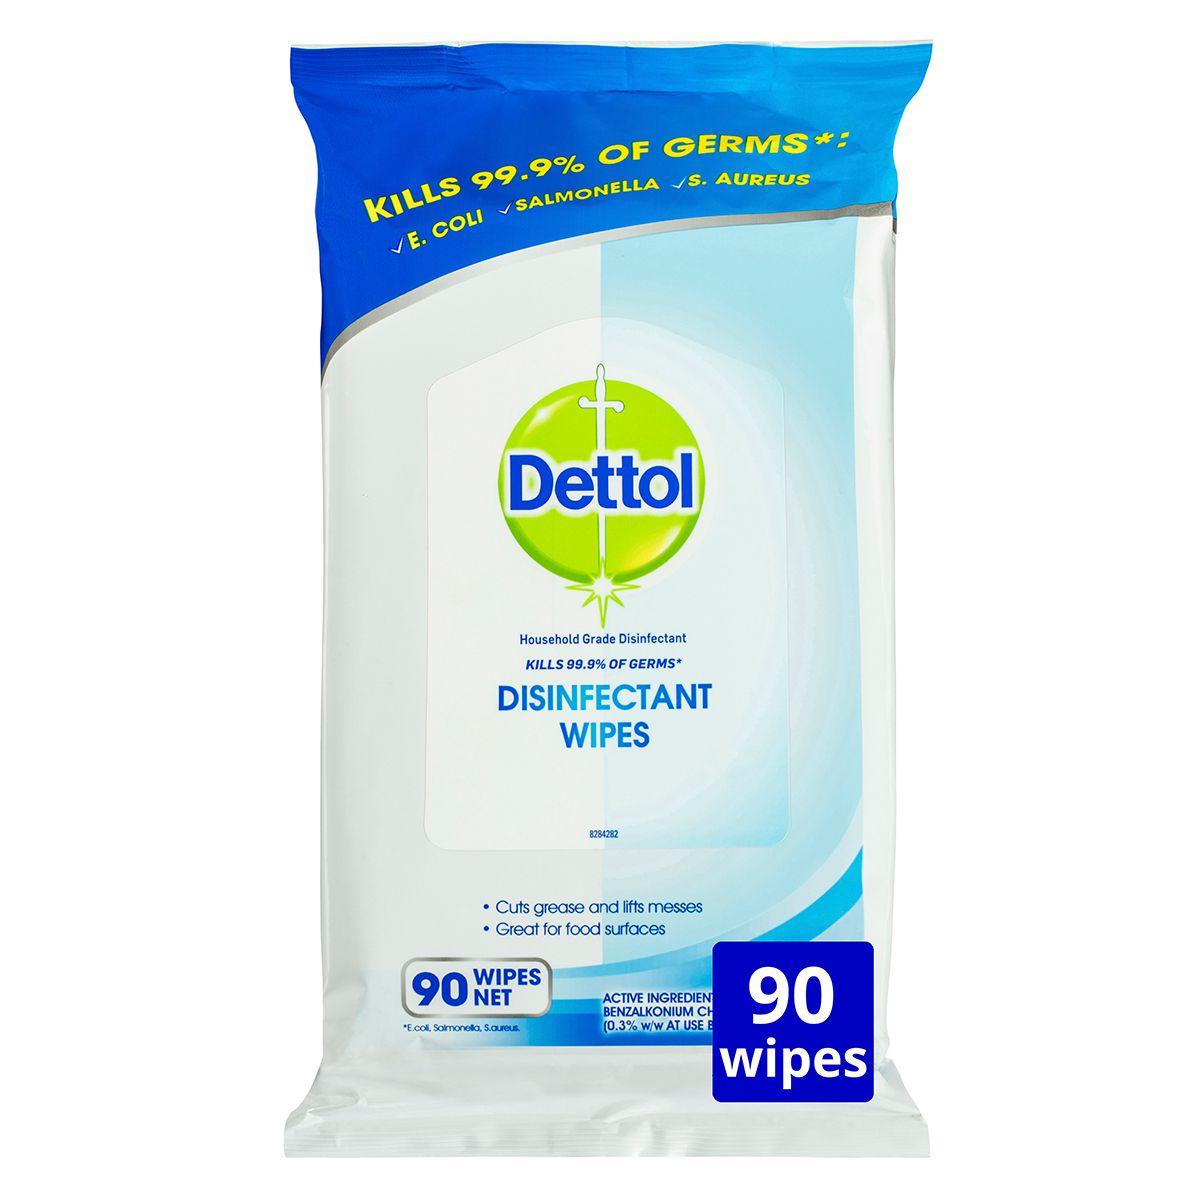 DETTOL 2 IN 1 HAND & SURFACE WIPES PACK/60